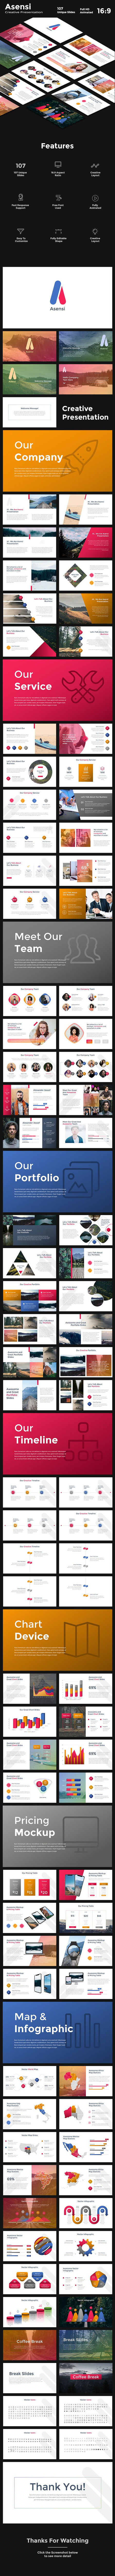 Asensi - Creative Google Slides Template | Creative powerpoint ...